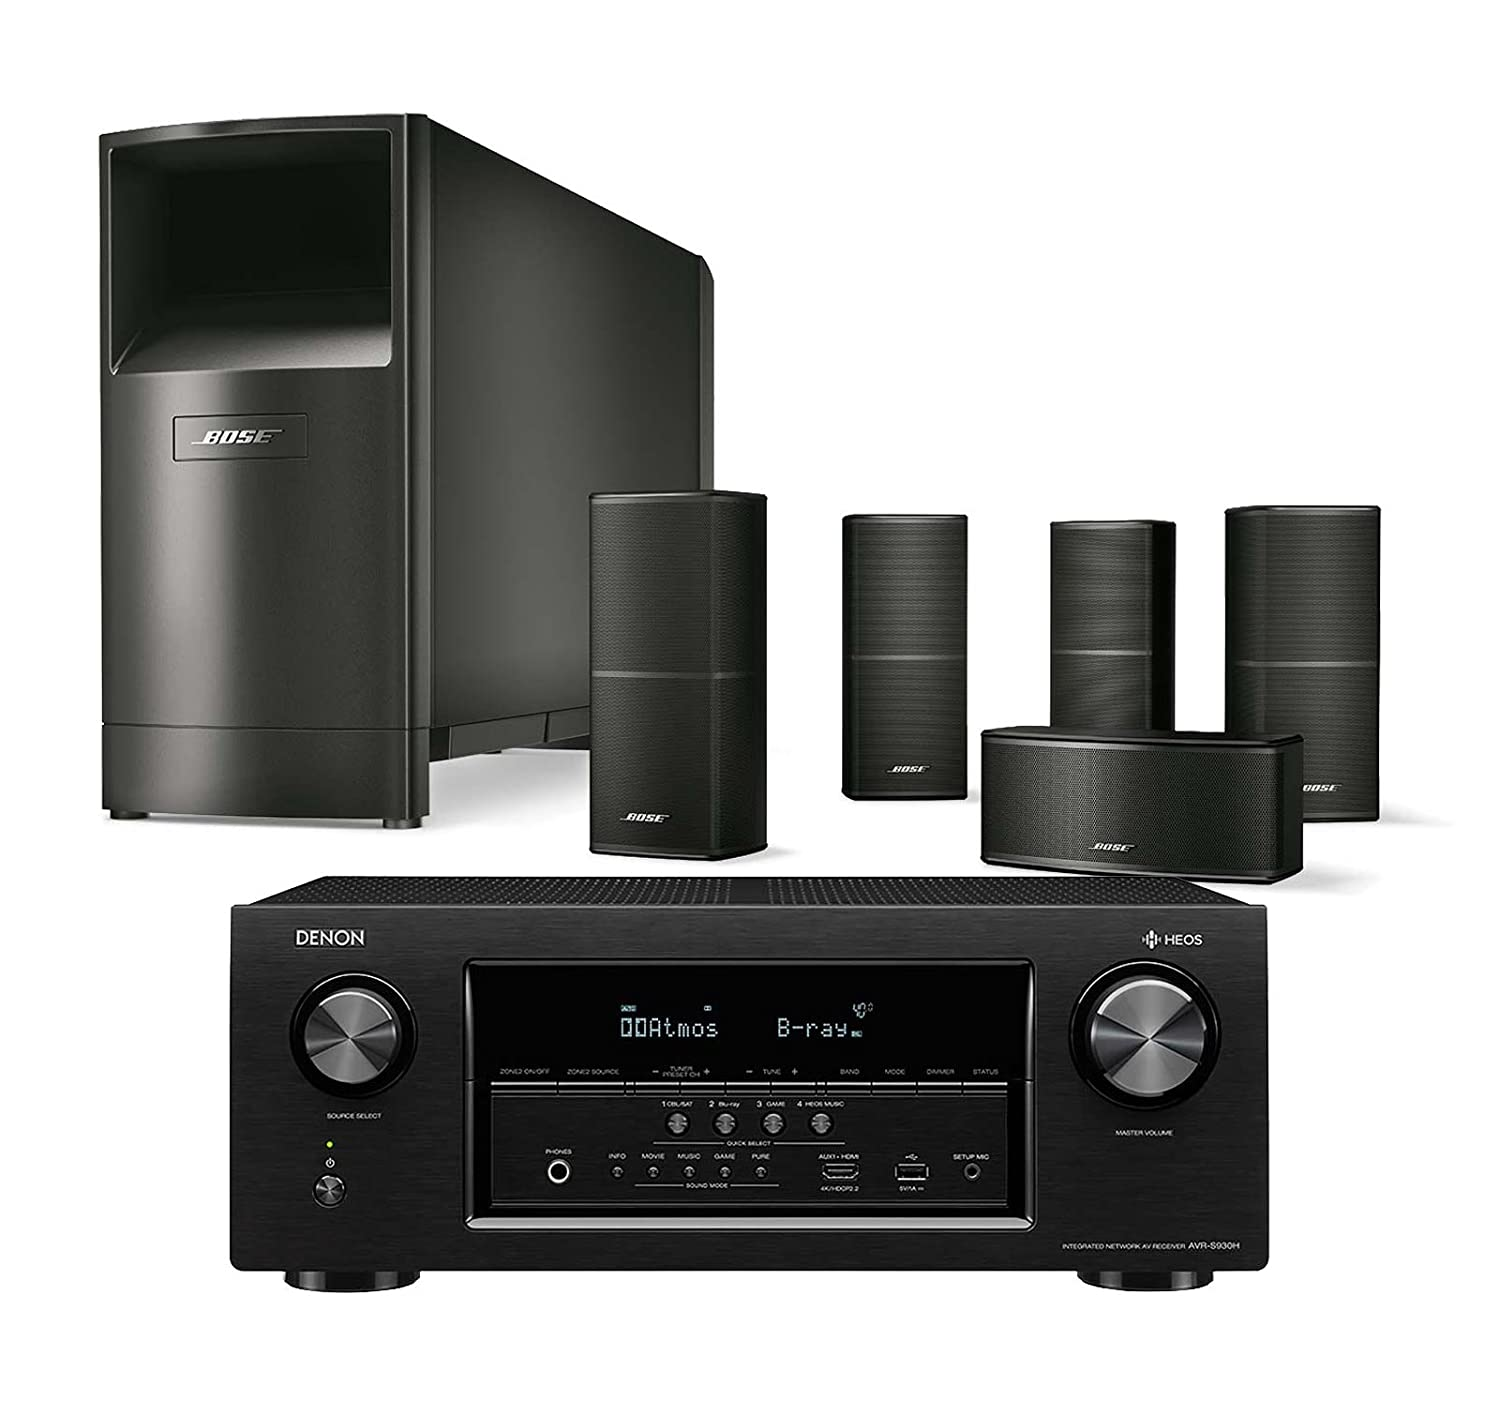 Amazon.com: Bose Acoustimass 10 Series V Wired Home Theater Speaker System,  Black, with Denon AVRS930H WiFi AV Receiver: Electronics